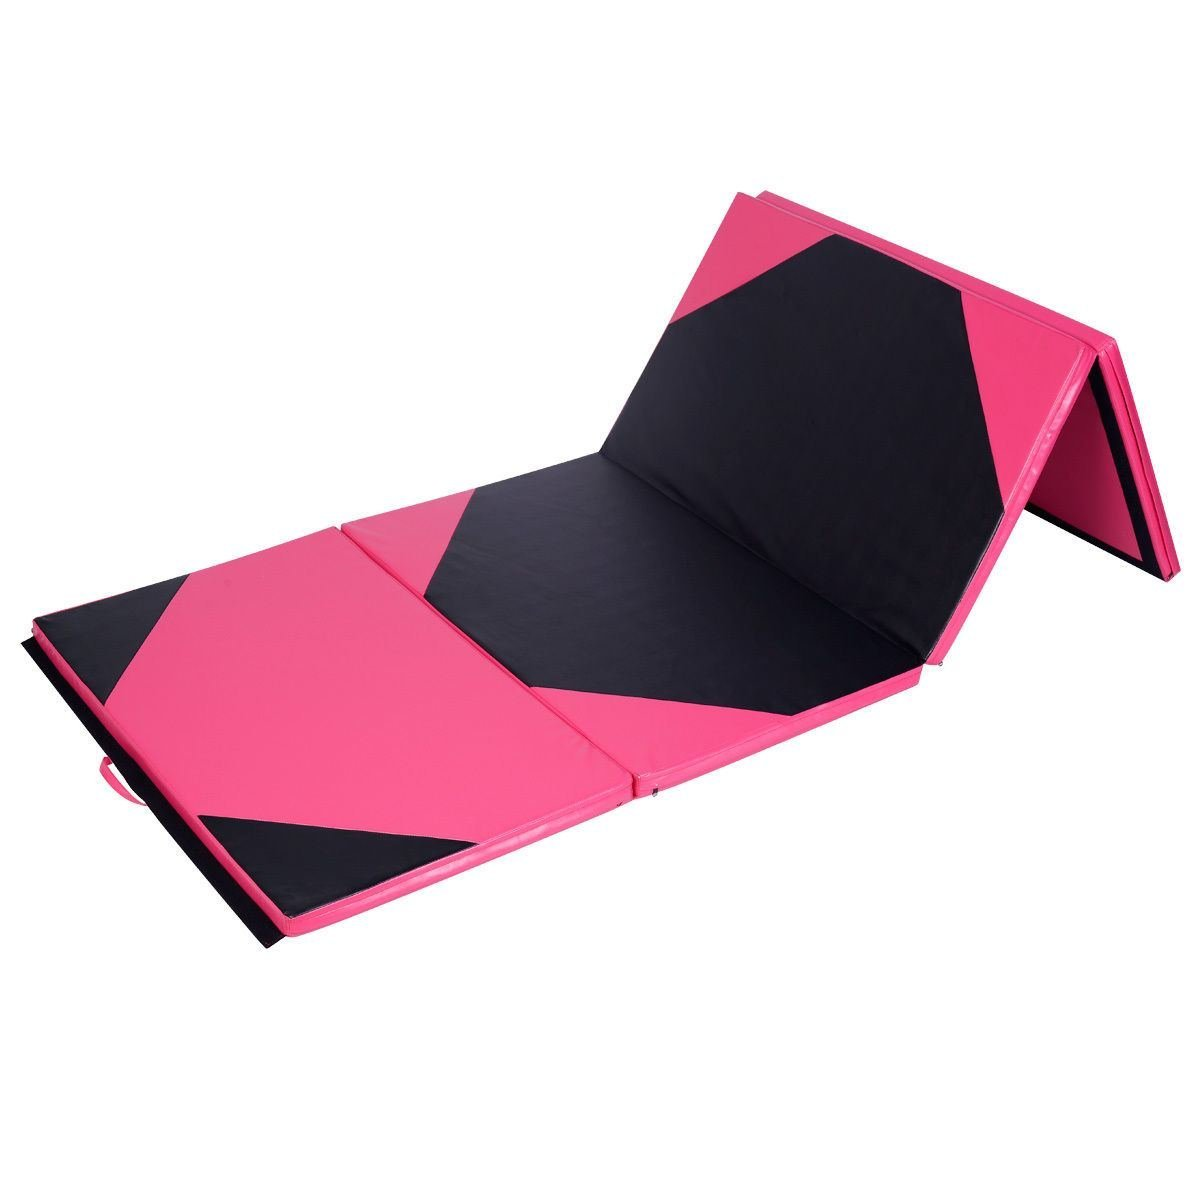 "Ainfox 4'x6'x2"" Folding Gymnastics Gym Exercise Aerobics ..."